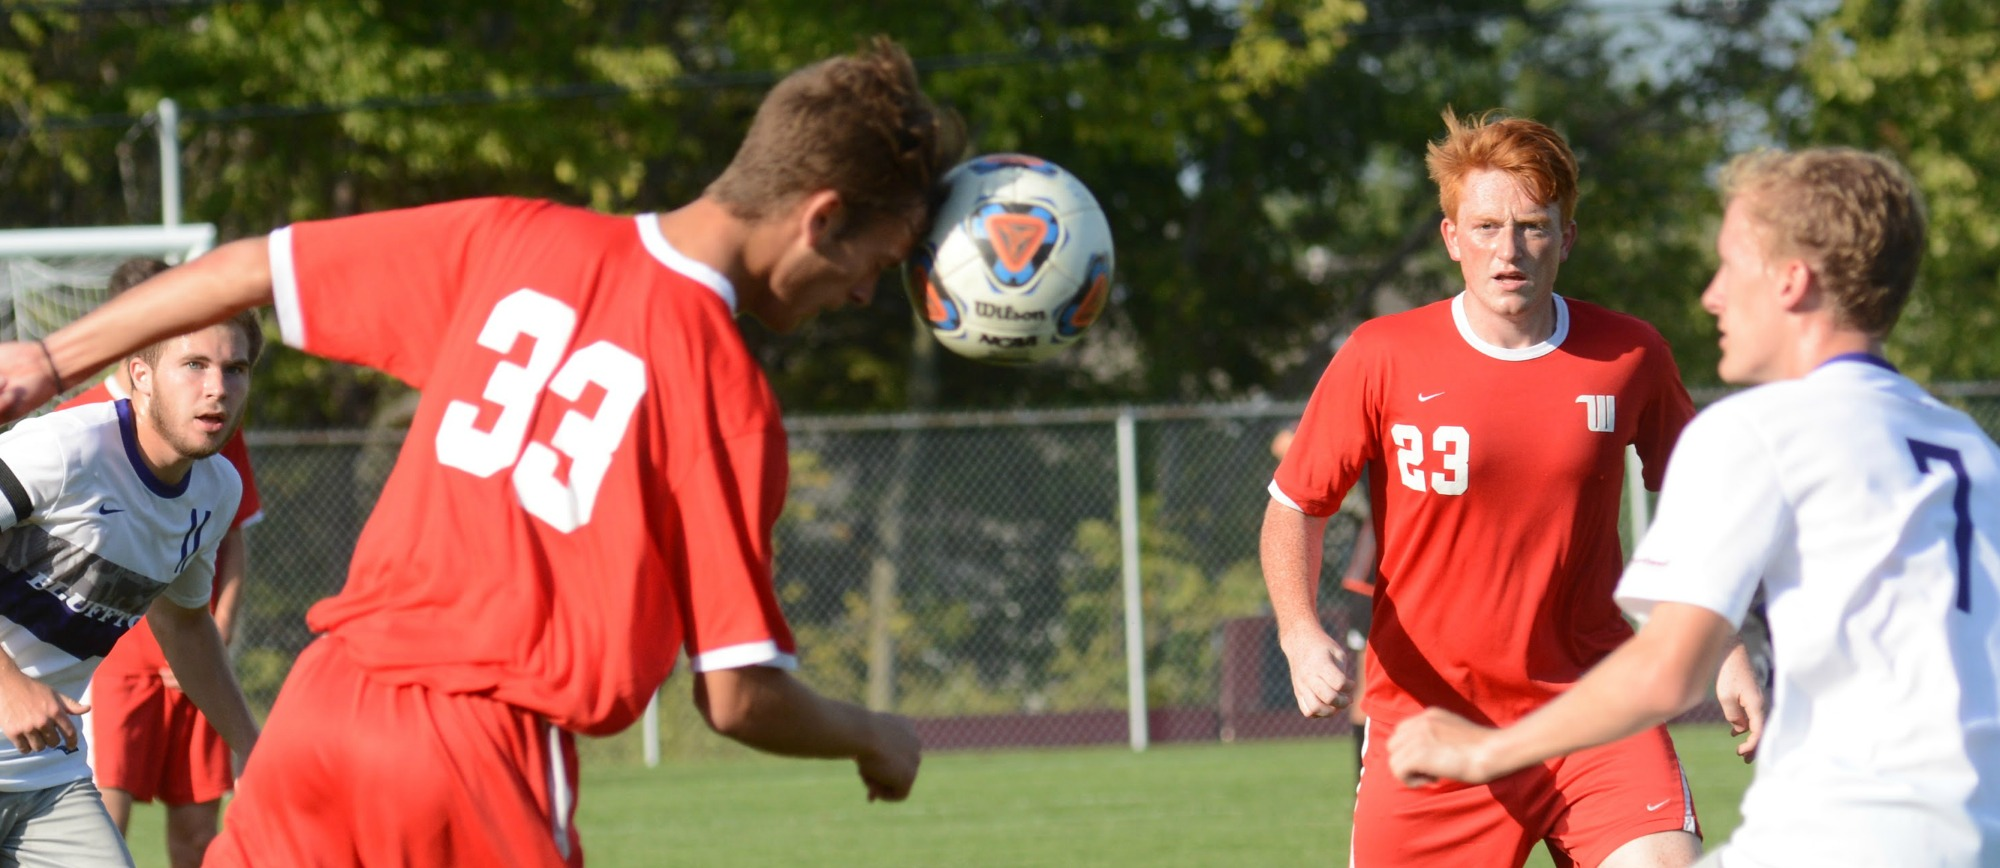 Zaragoza's Early Goal Not Enough at Ohio Northern